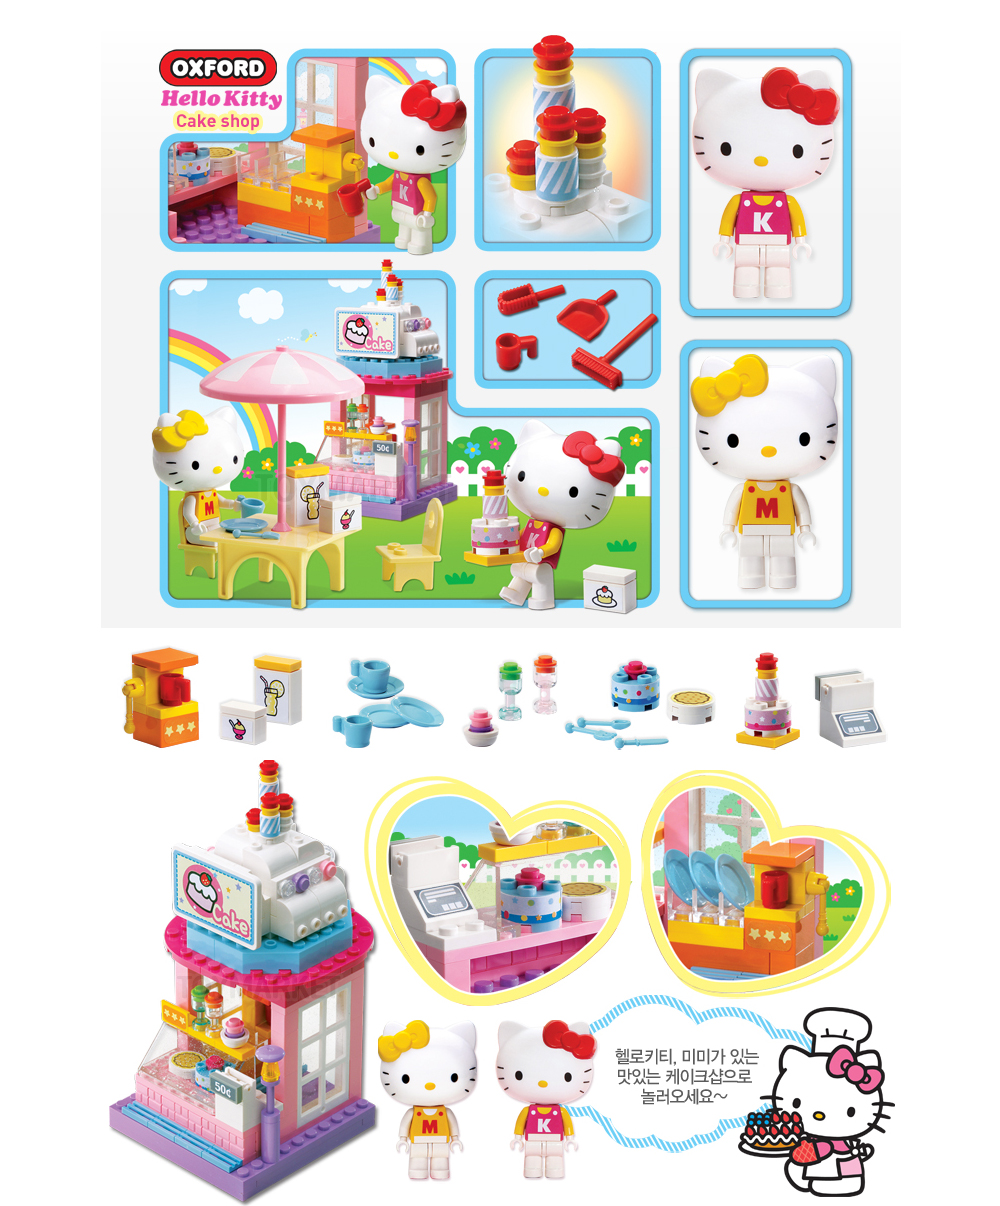 Oxford-Lego-Style-Kids-Block-Toy-Hello-Kitty-Cake-Shop-HK30110